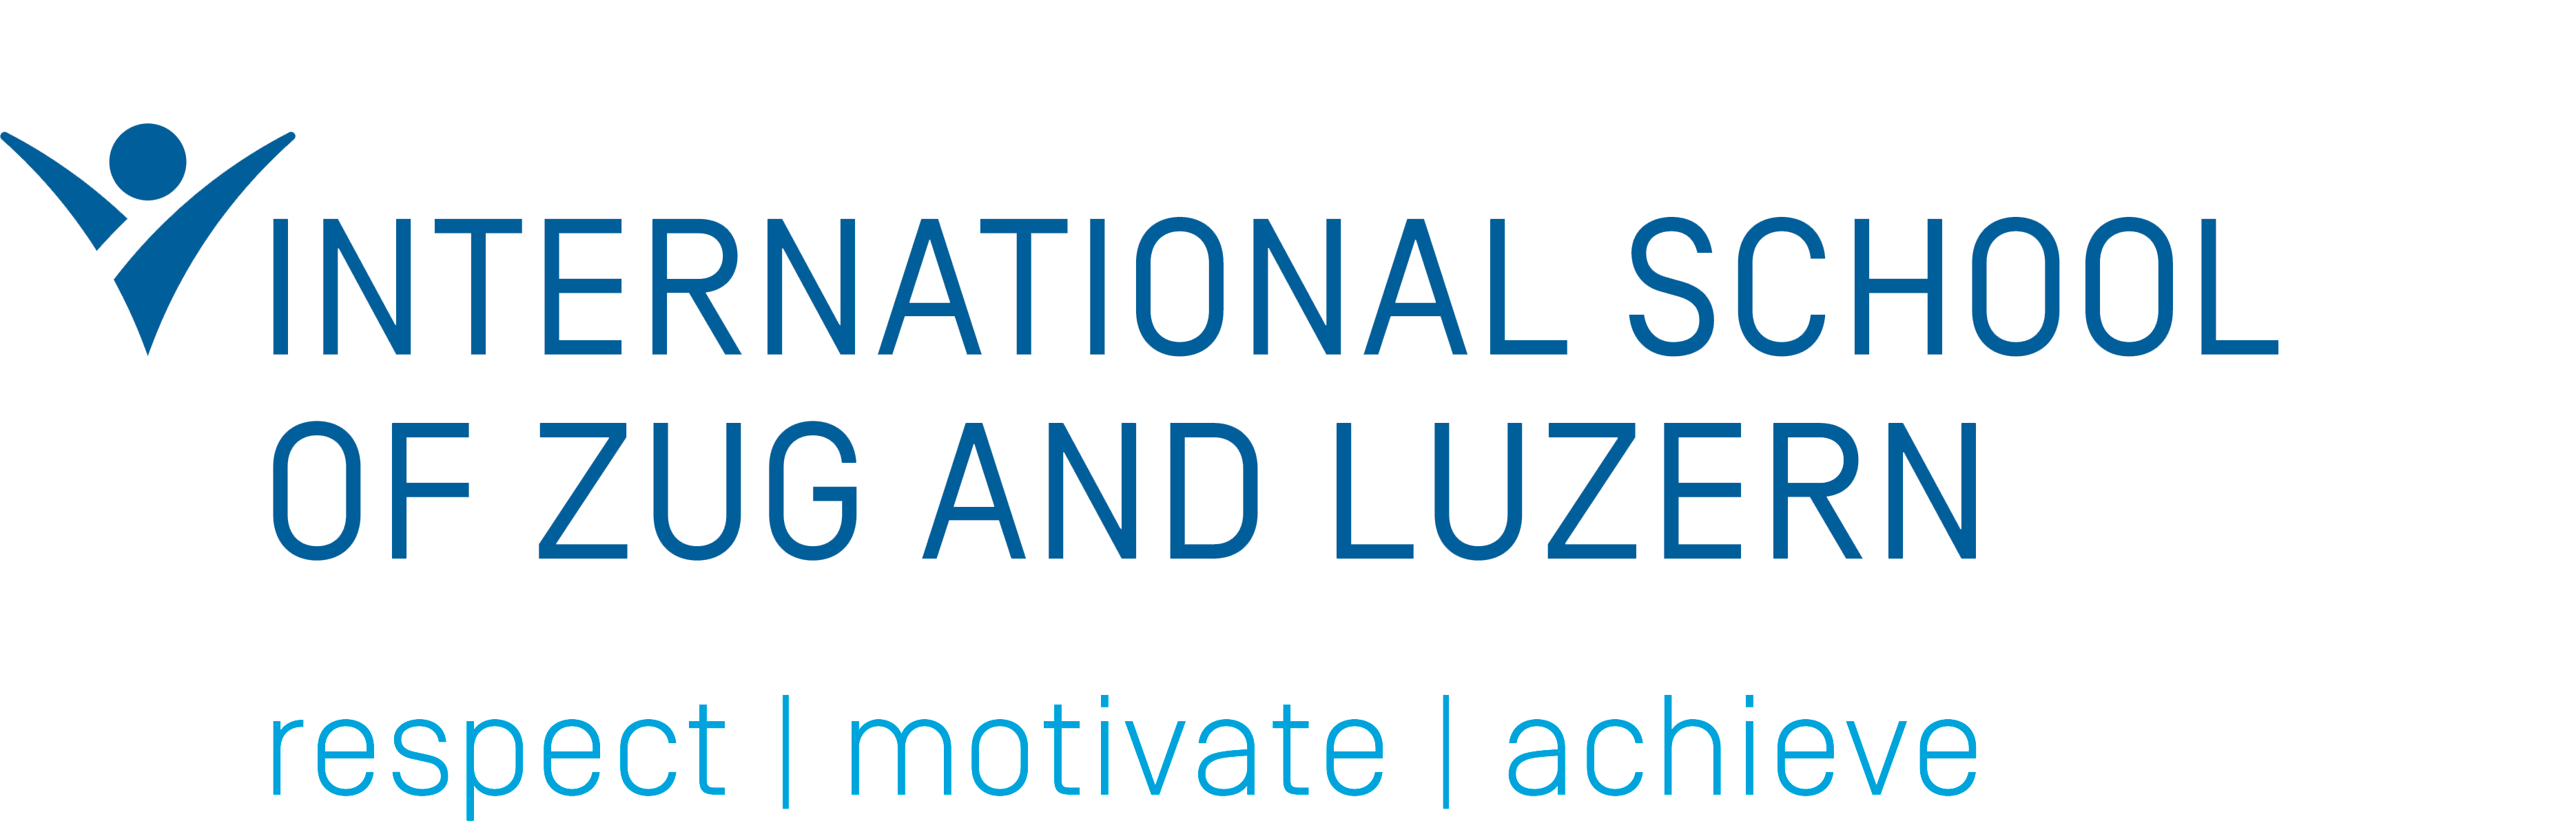 International School of Zug and Luzern